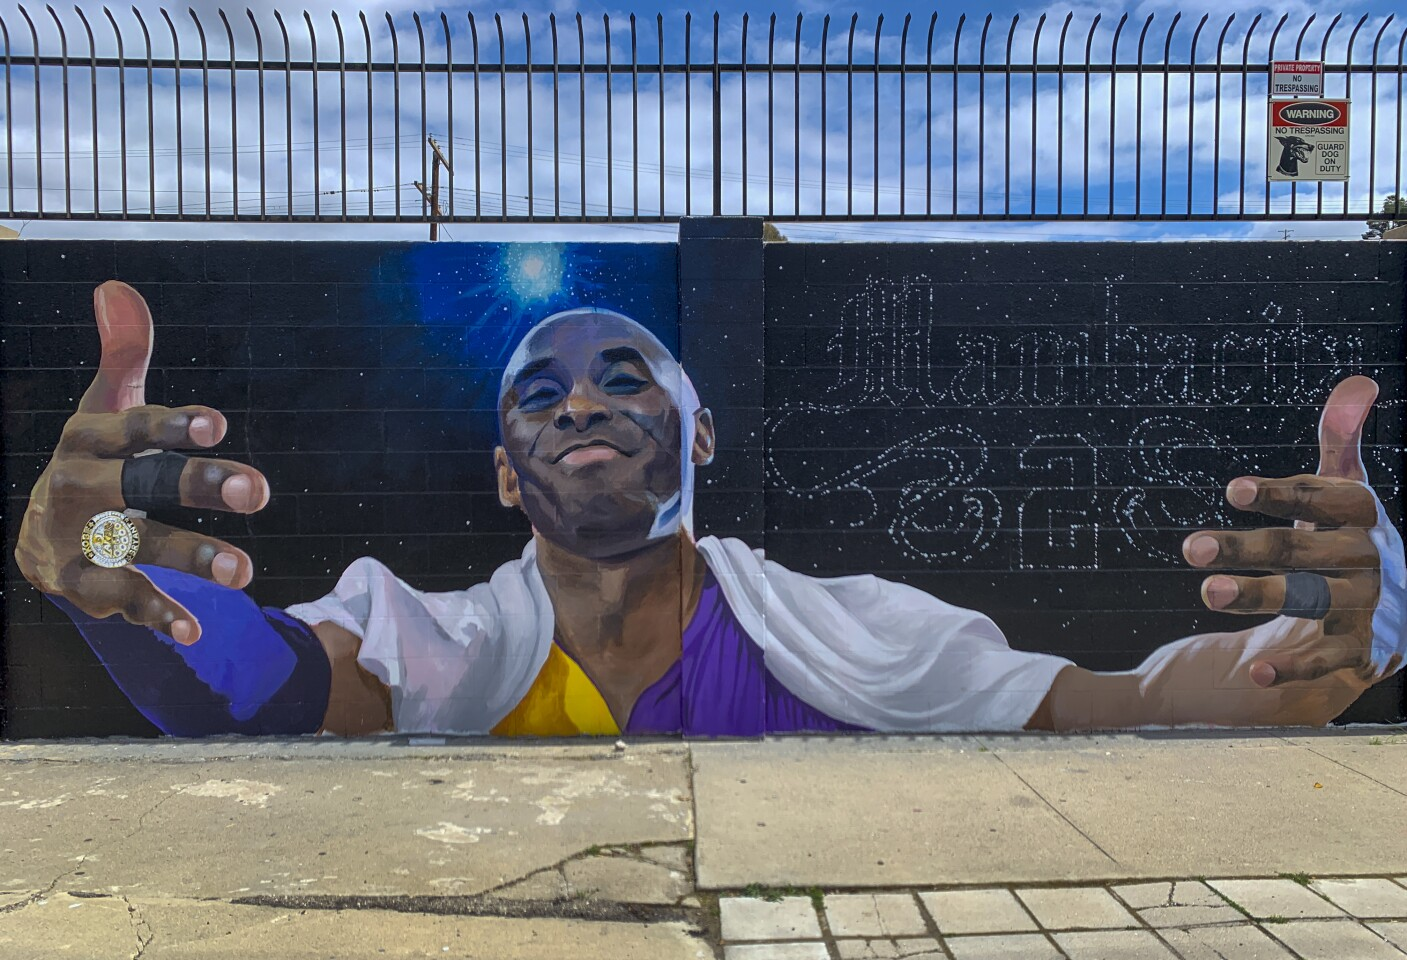 """Kobe Bryant mural, """"After the final Lakers' game"""", by Melany Meza-Dierks, @melanymd at 5220 Valley Blvd. in El Sereno. This Kobe Bryant tribute mural in Southern California is part of 301 worldwide featured on the KobeMural website and Instagram."""